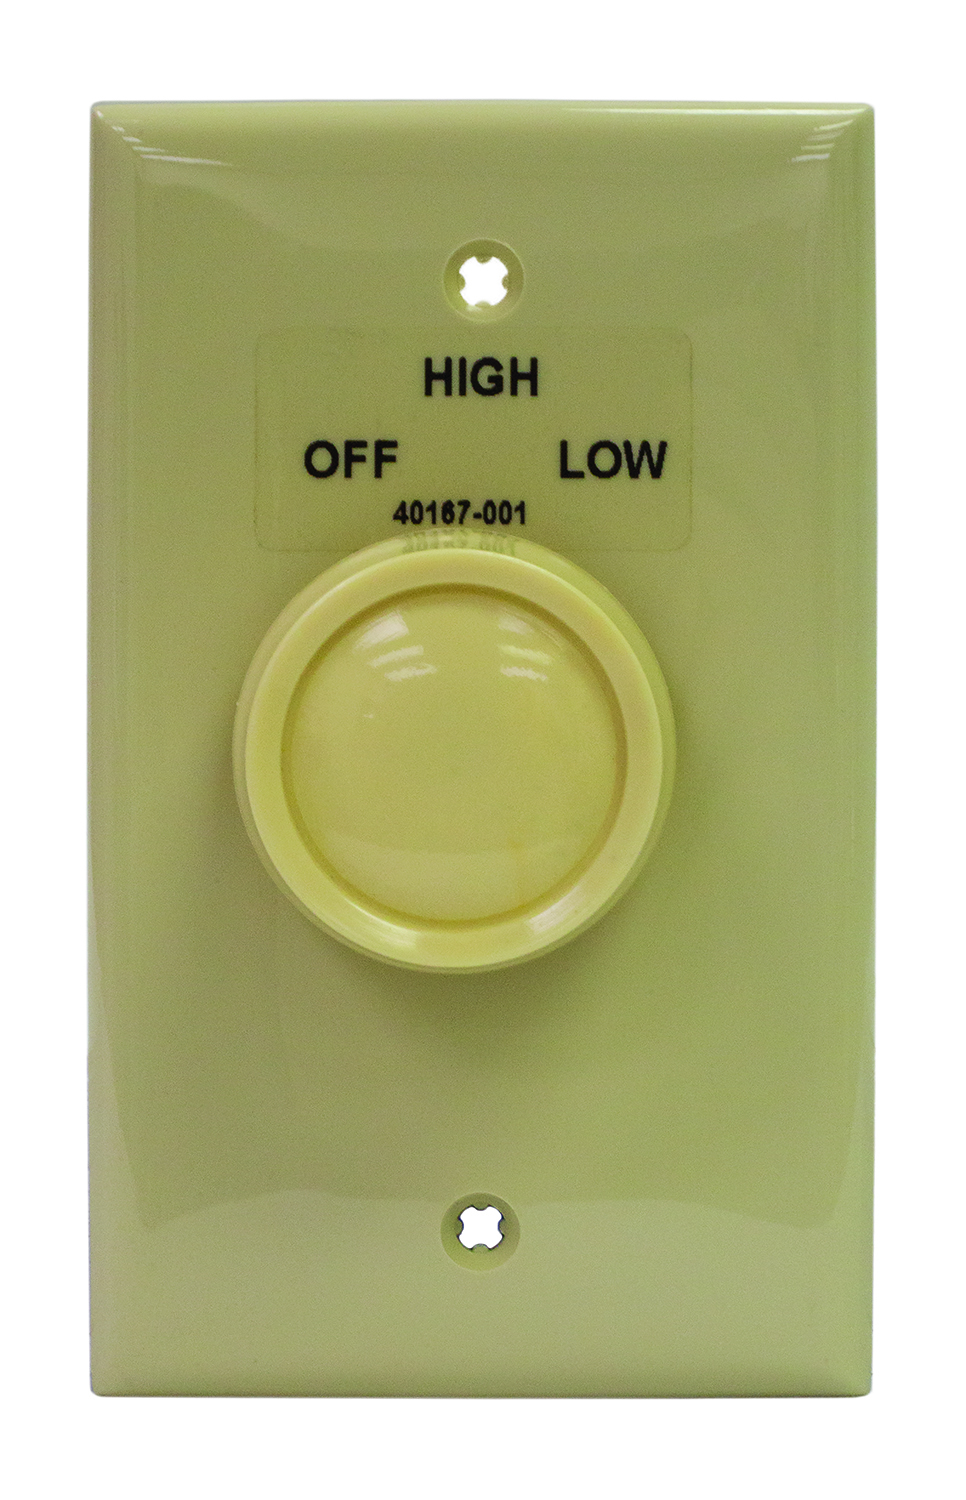 2-SW TPI 2 SPEED WALL SWITCH & PLATE